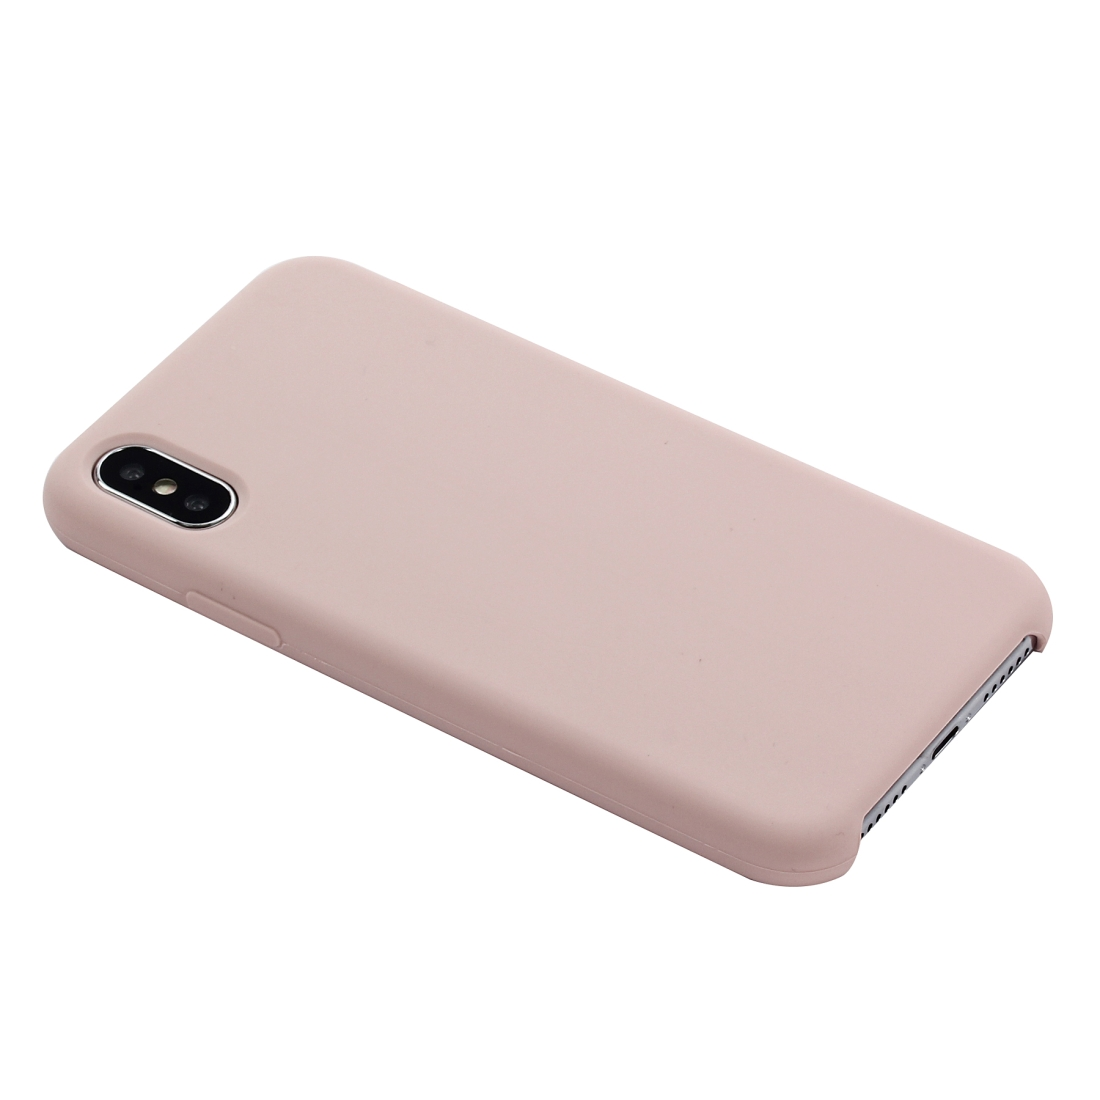 Four Corners Full Coverage Liquid Silicone Protective Case Back Cover for iPhone X / XS (Rose Gold)